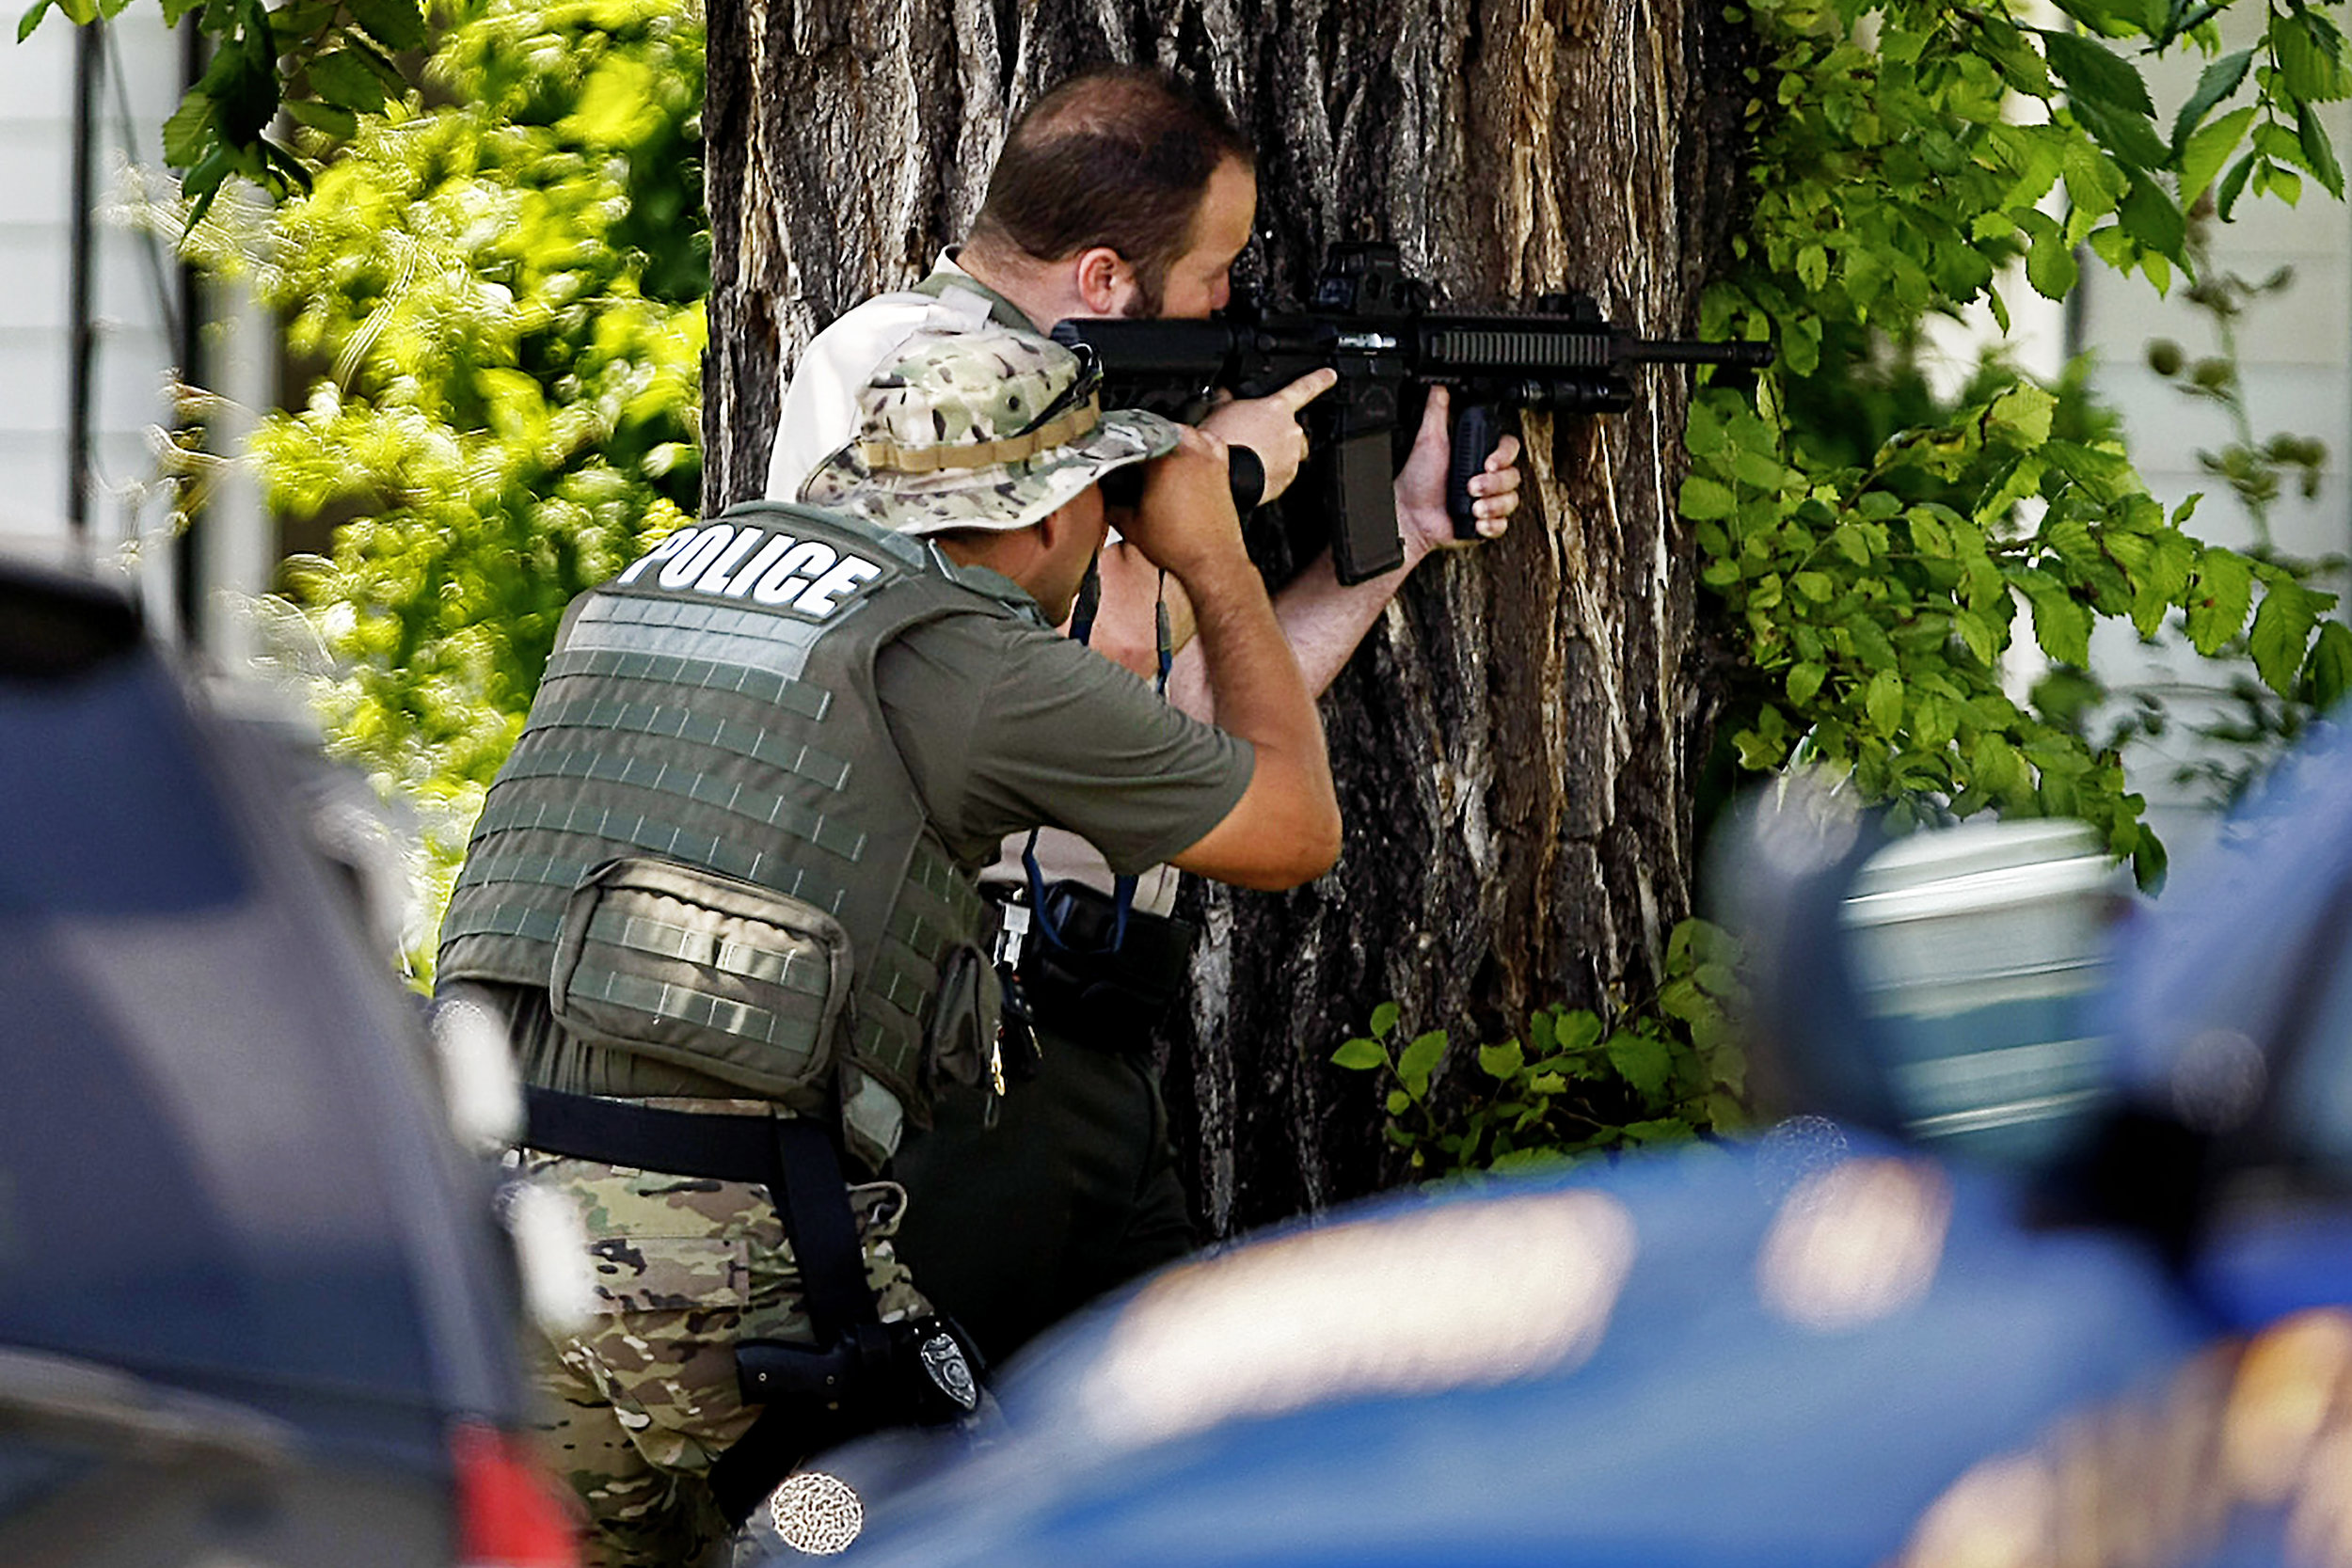 Police SWAT officers keep an eye on the alley where Thomas Fee, 52, of Hutchinson, barricaded himself in a garage with a gun, causing a standoff with police on July 4, 2014, in Hutchinson, Kan. Fee was eventually taken into custody after two attempts at flooding him out with tear gas.